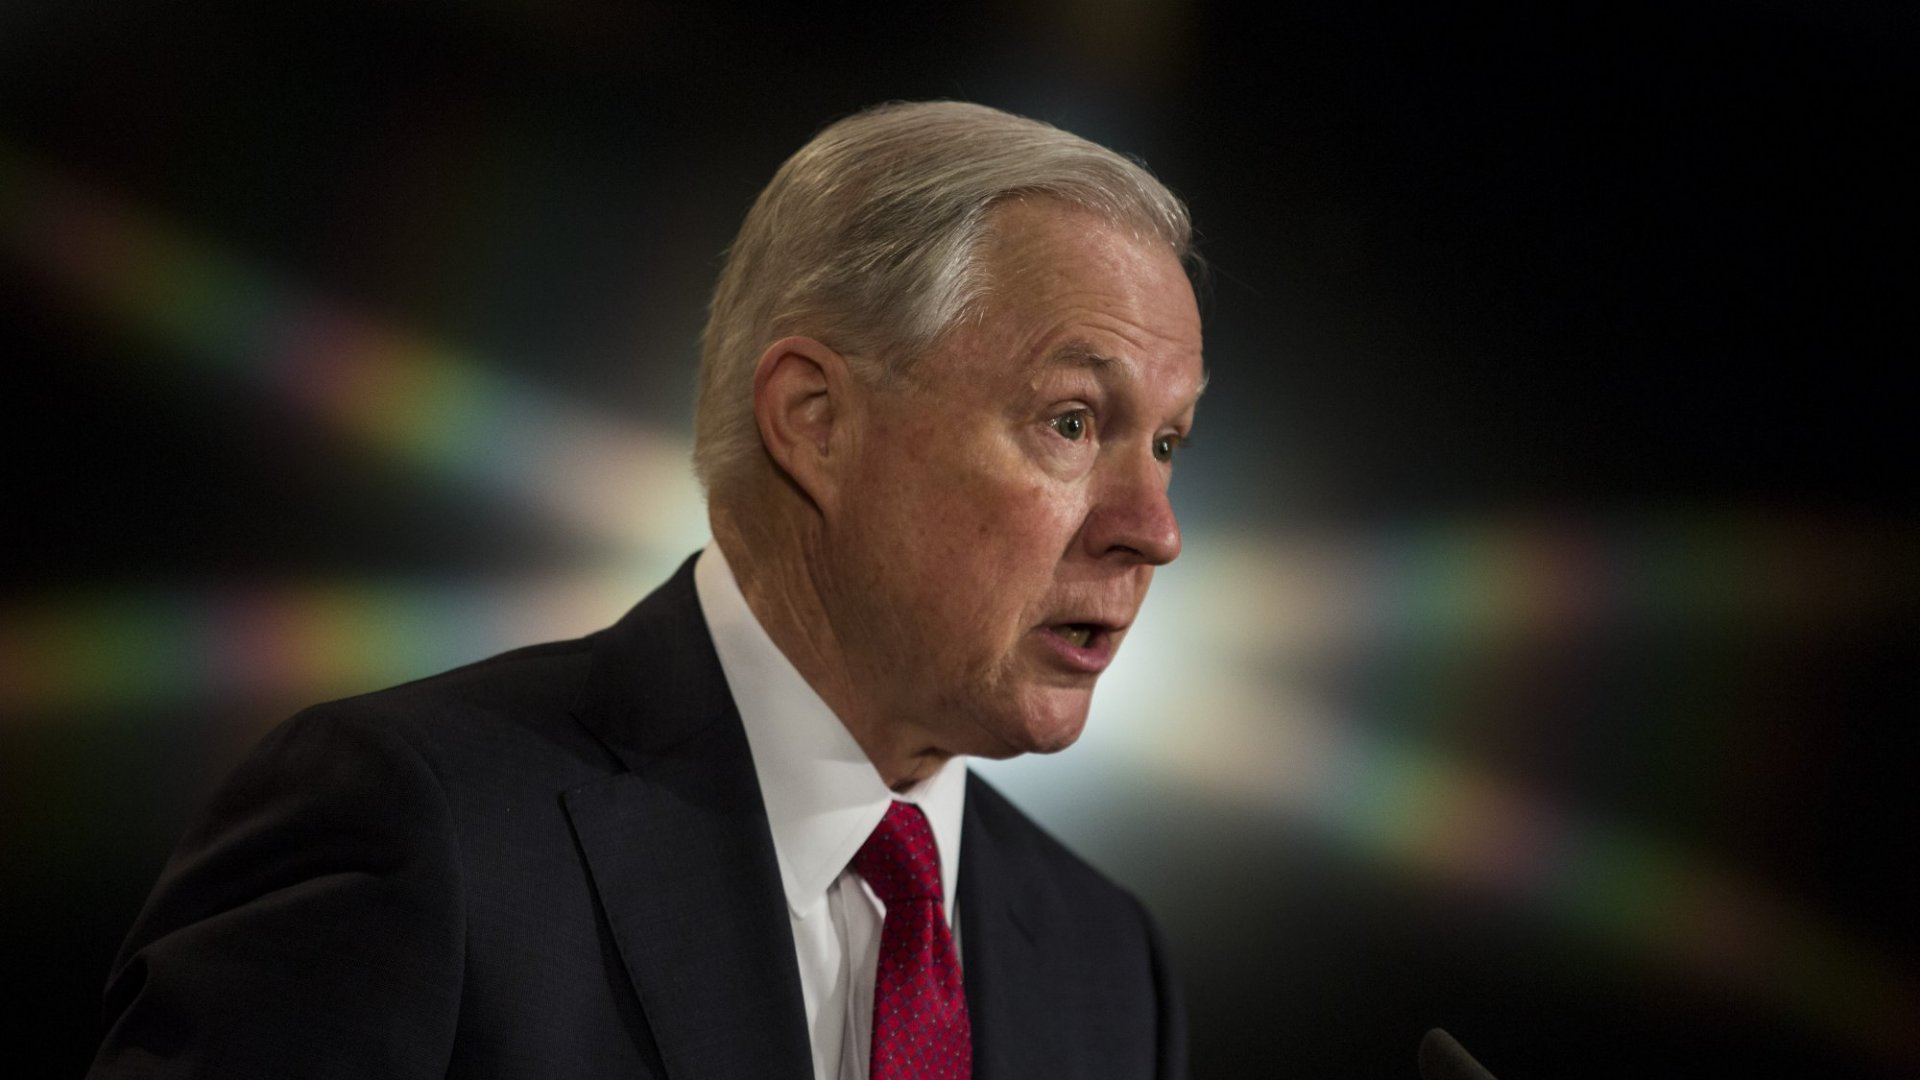 U.S. Attorney General Jeff Sessions, a staunch opponent of marijuana legalization, delivered a blow to the industry on Thursday after rescinding Obama-era policies that protected the industry.